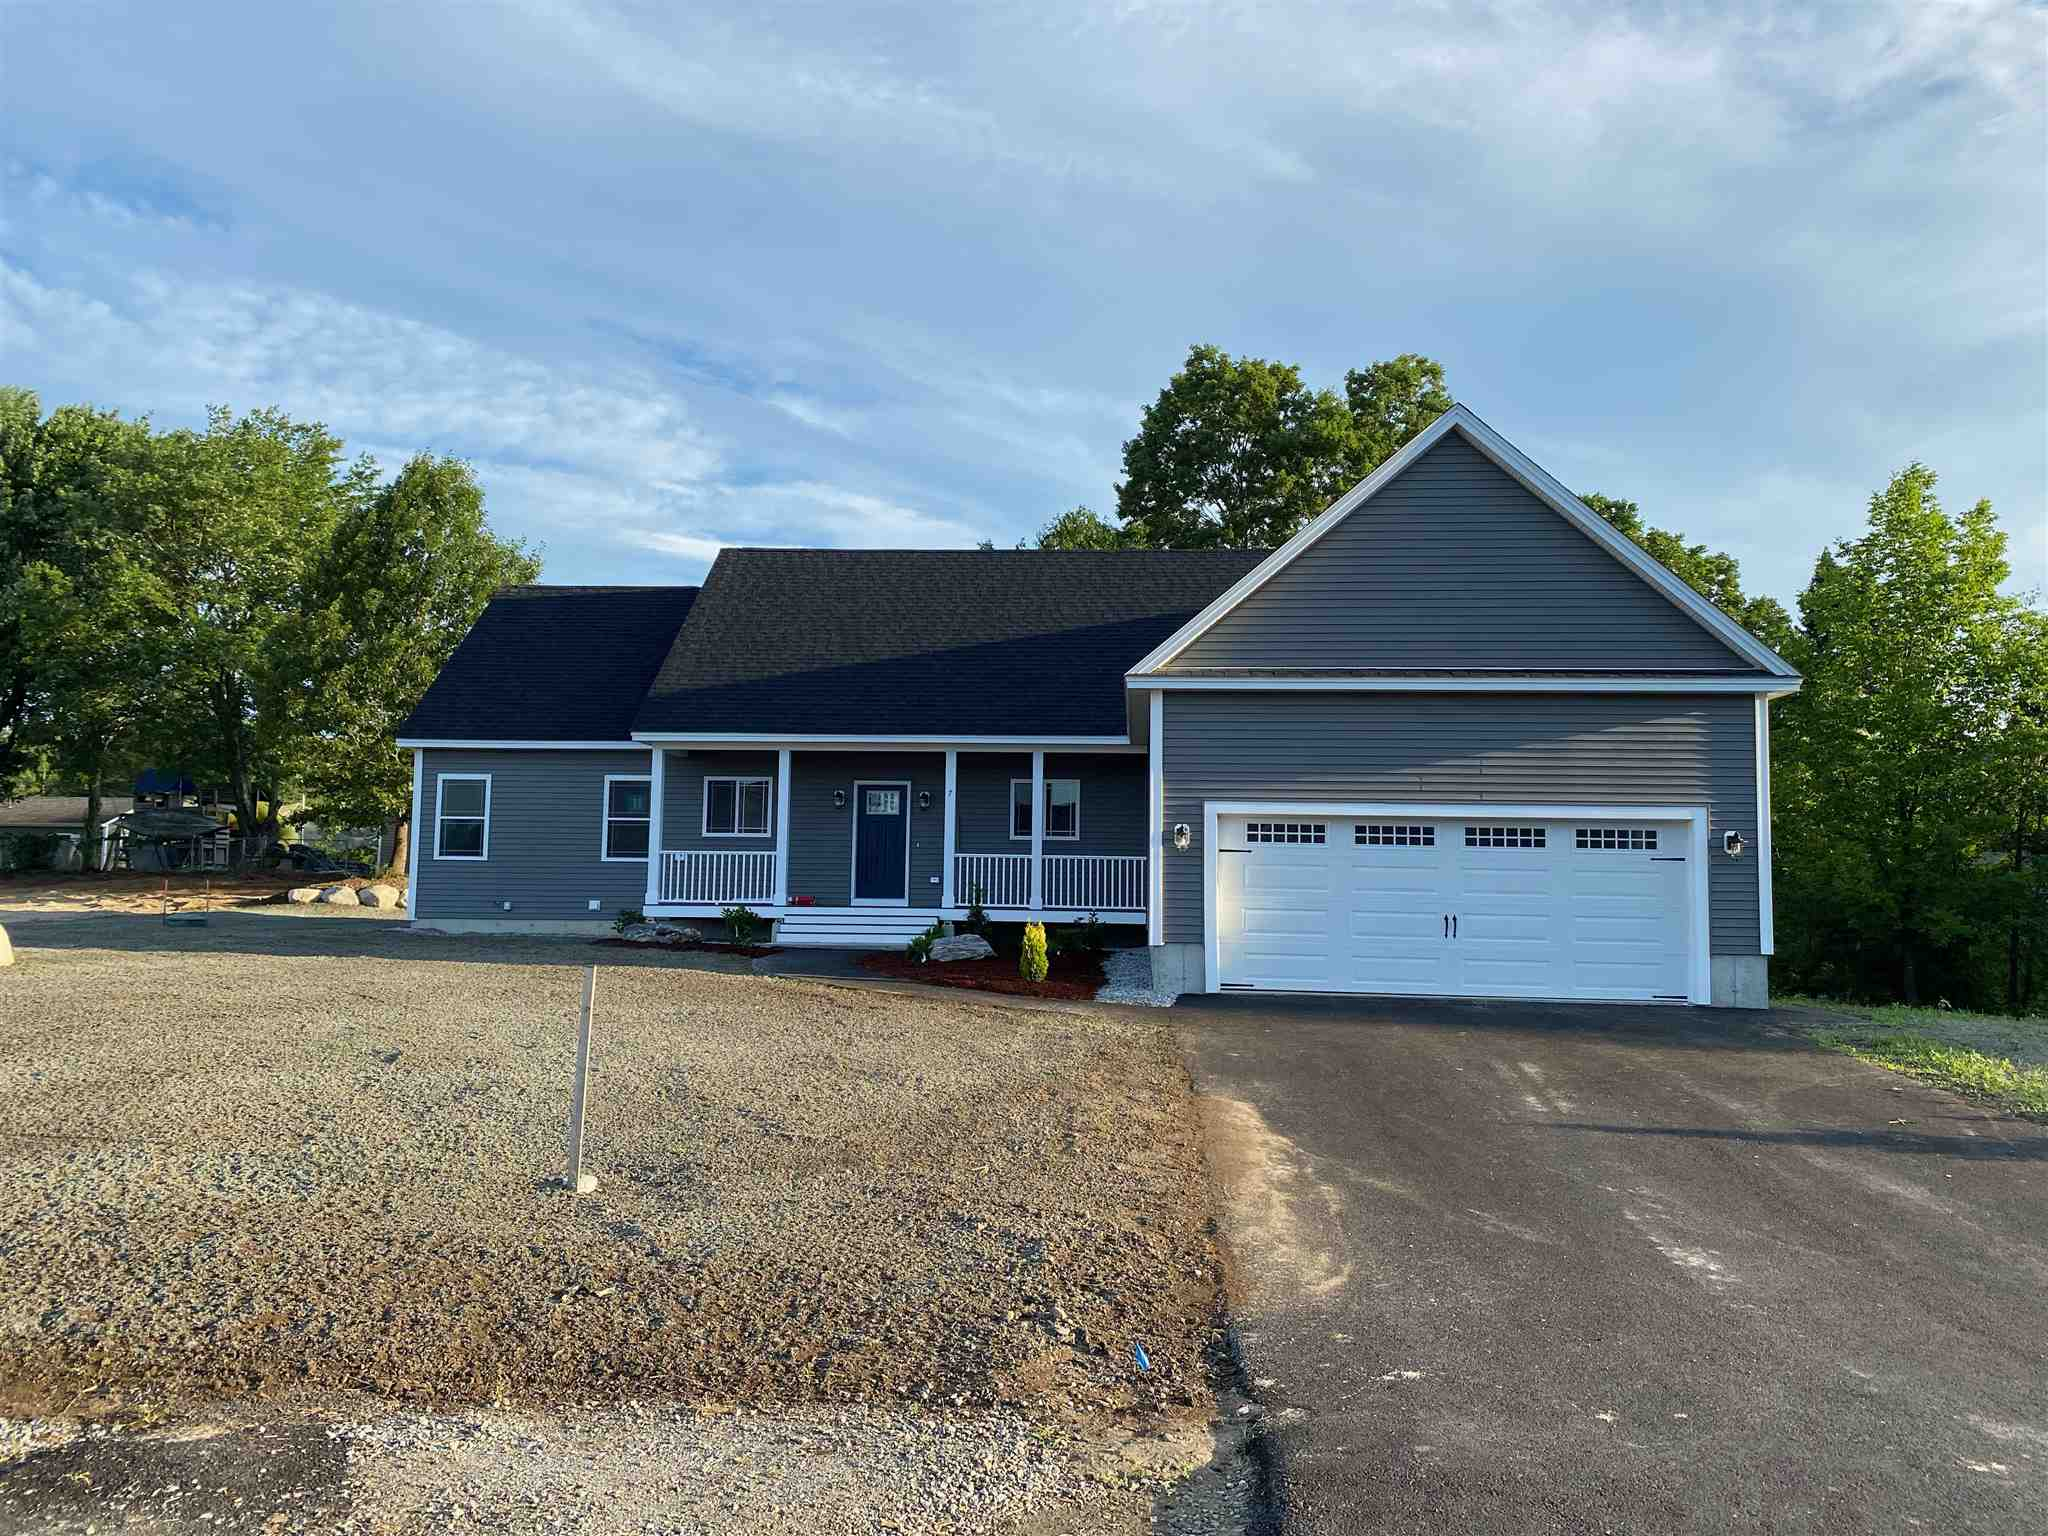 MLS 4788233: Lot 25 Curtis Commons Way-Unit Lot 25, Milford NH